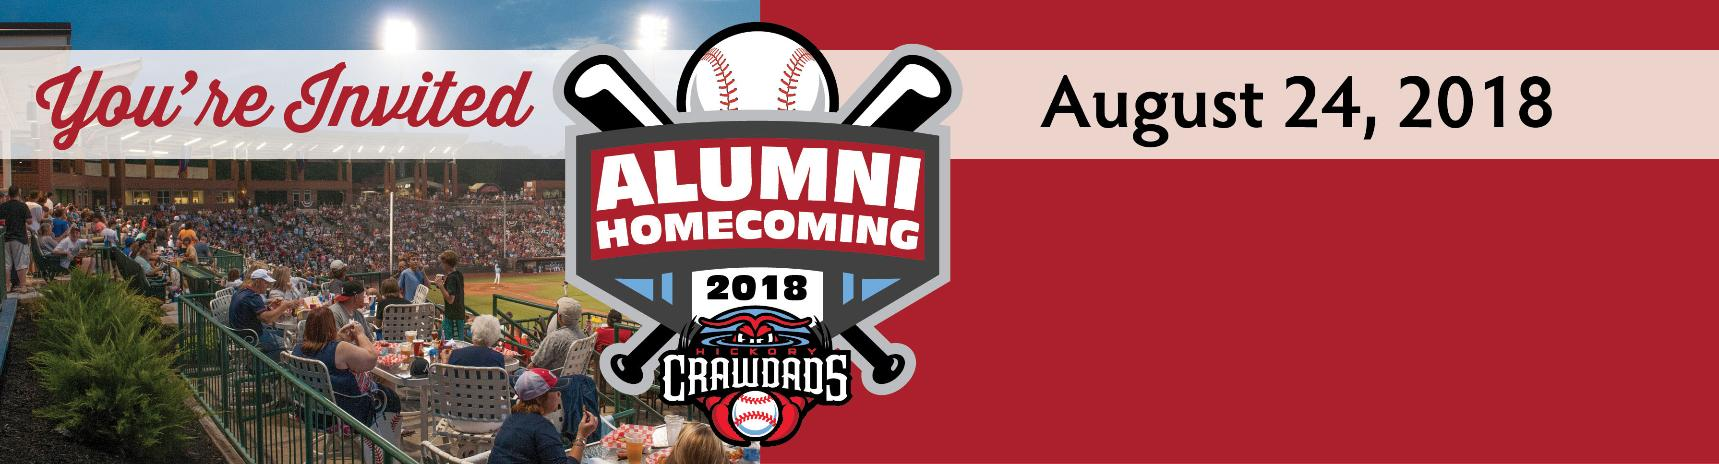 RSVP for Alumni Homecoming